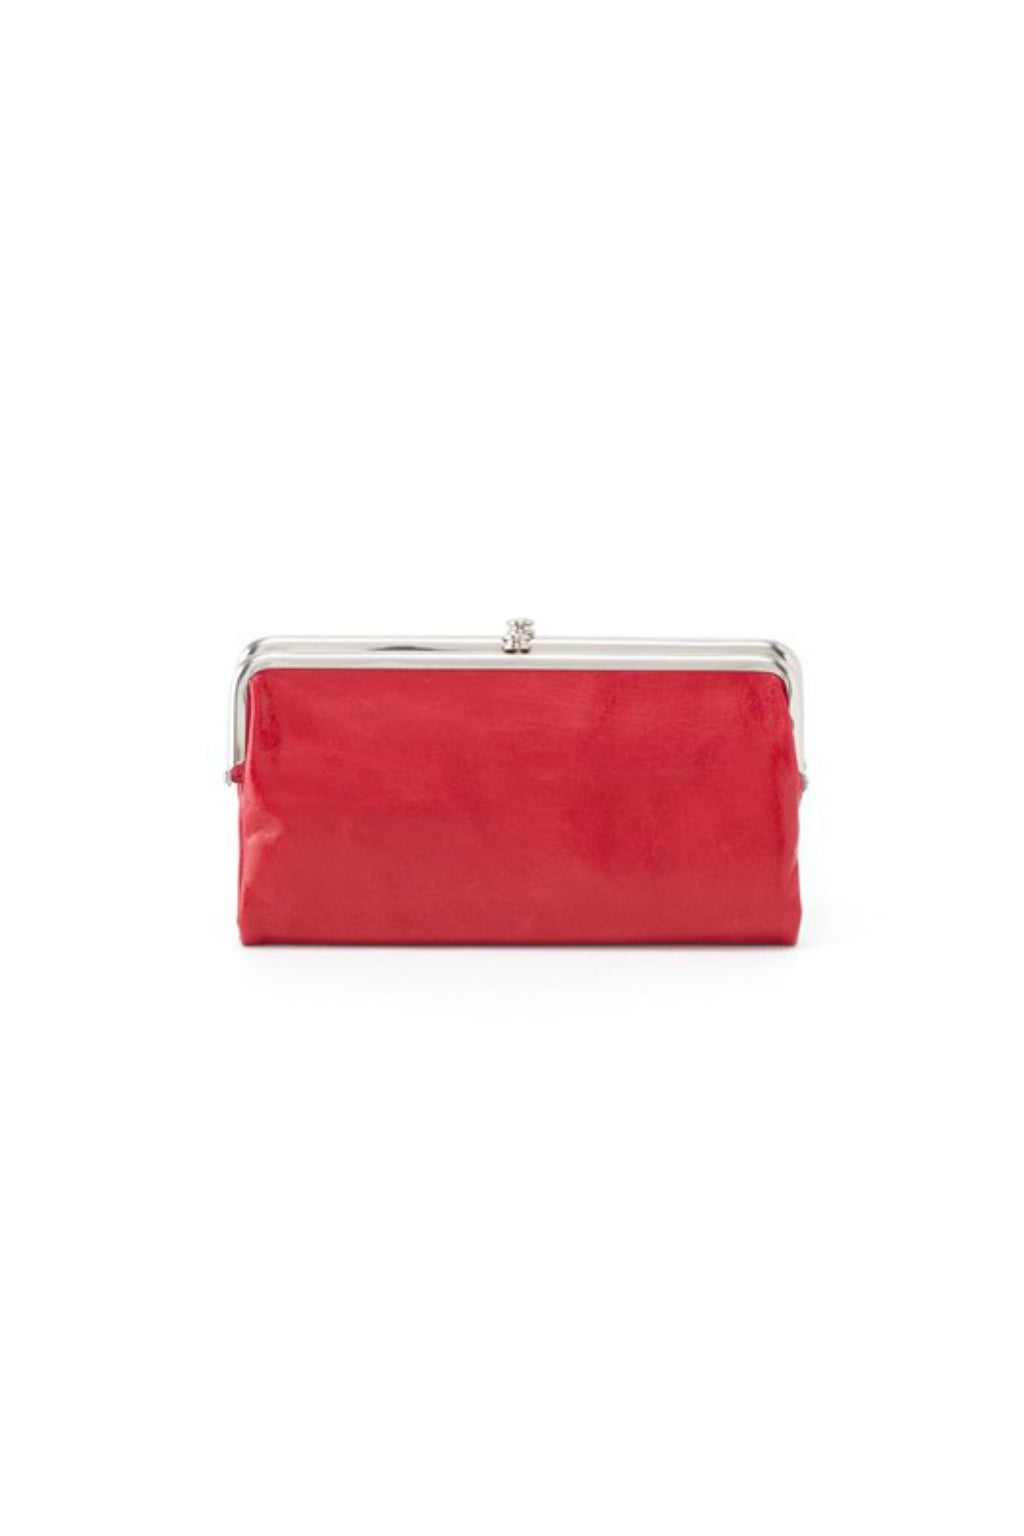 Hobo Lauren Wallet - Geranium